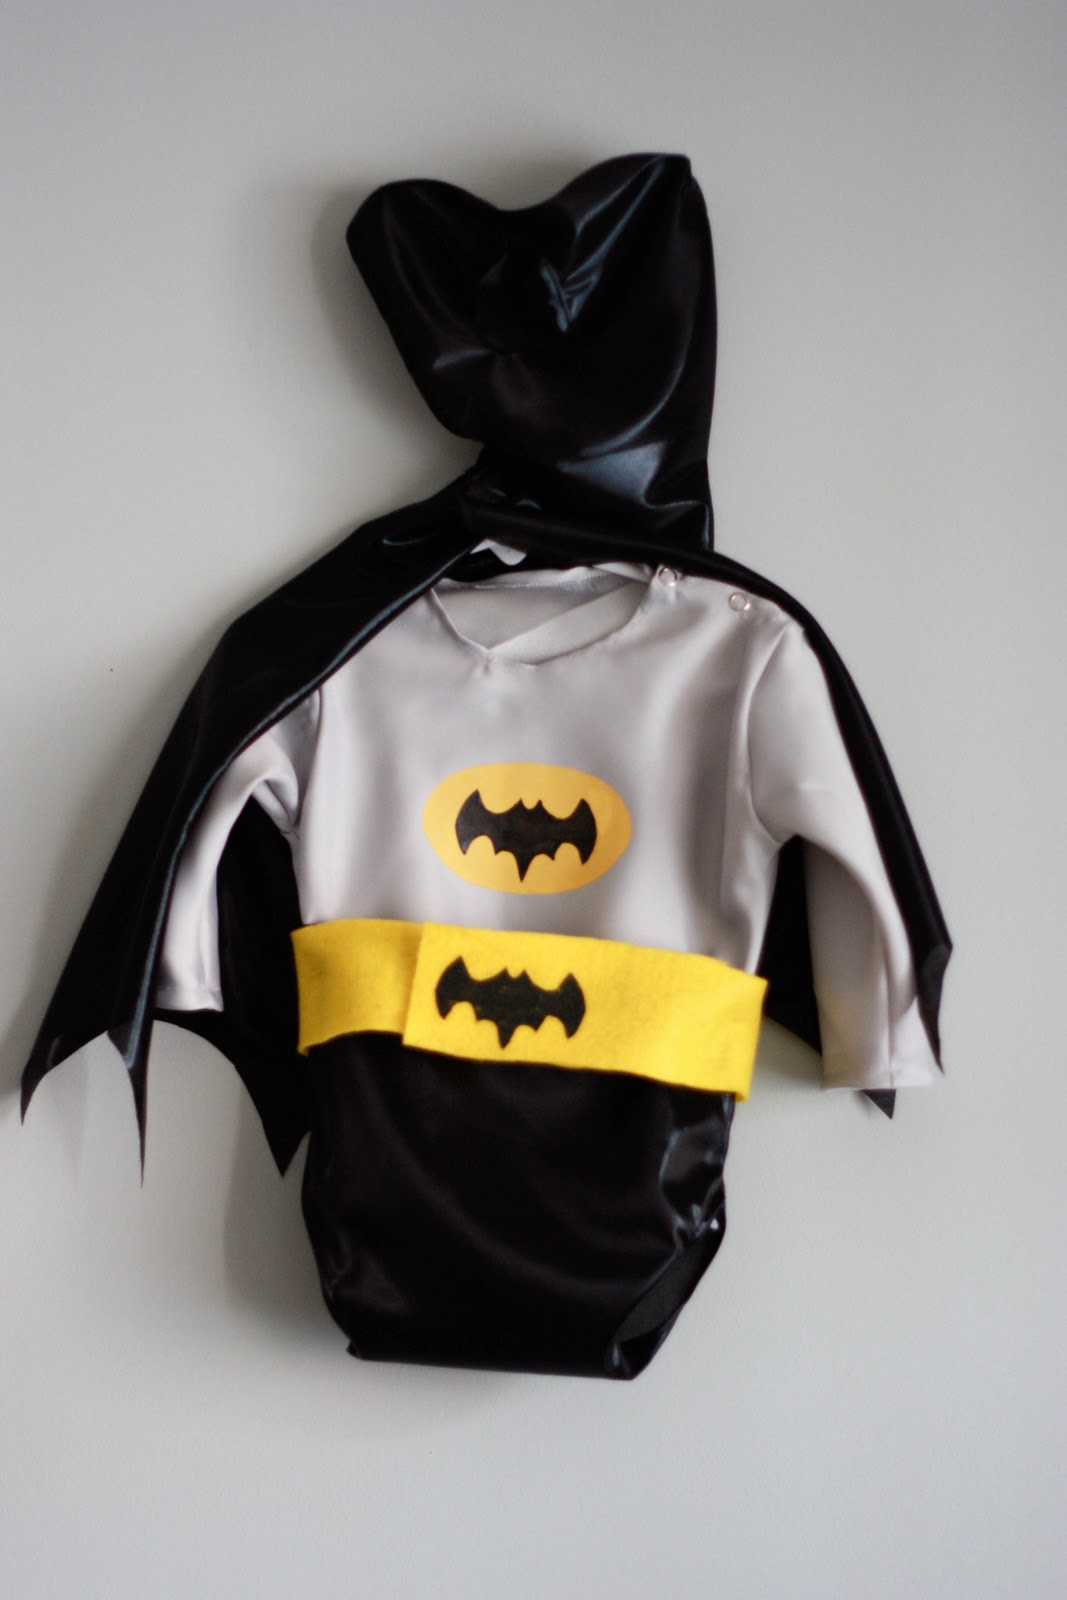 After working on costumes for all girls (seriously seven girl costumes!) I was really excited to receive a request for one that is ALL BOY. Old school ... & Baby Batman Costume - Live Free Creative Co